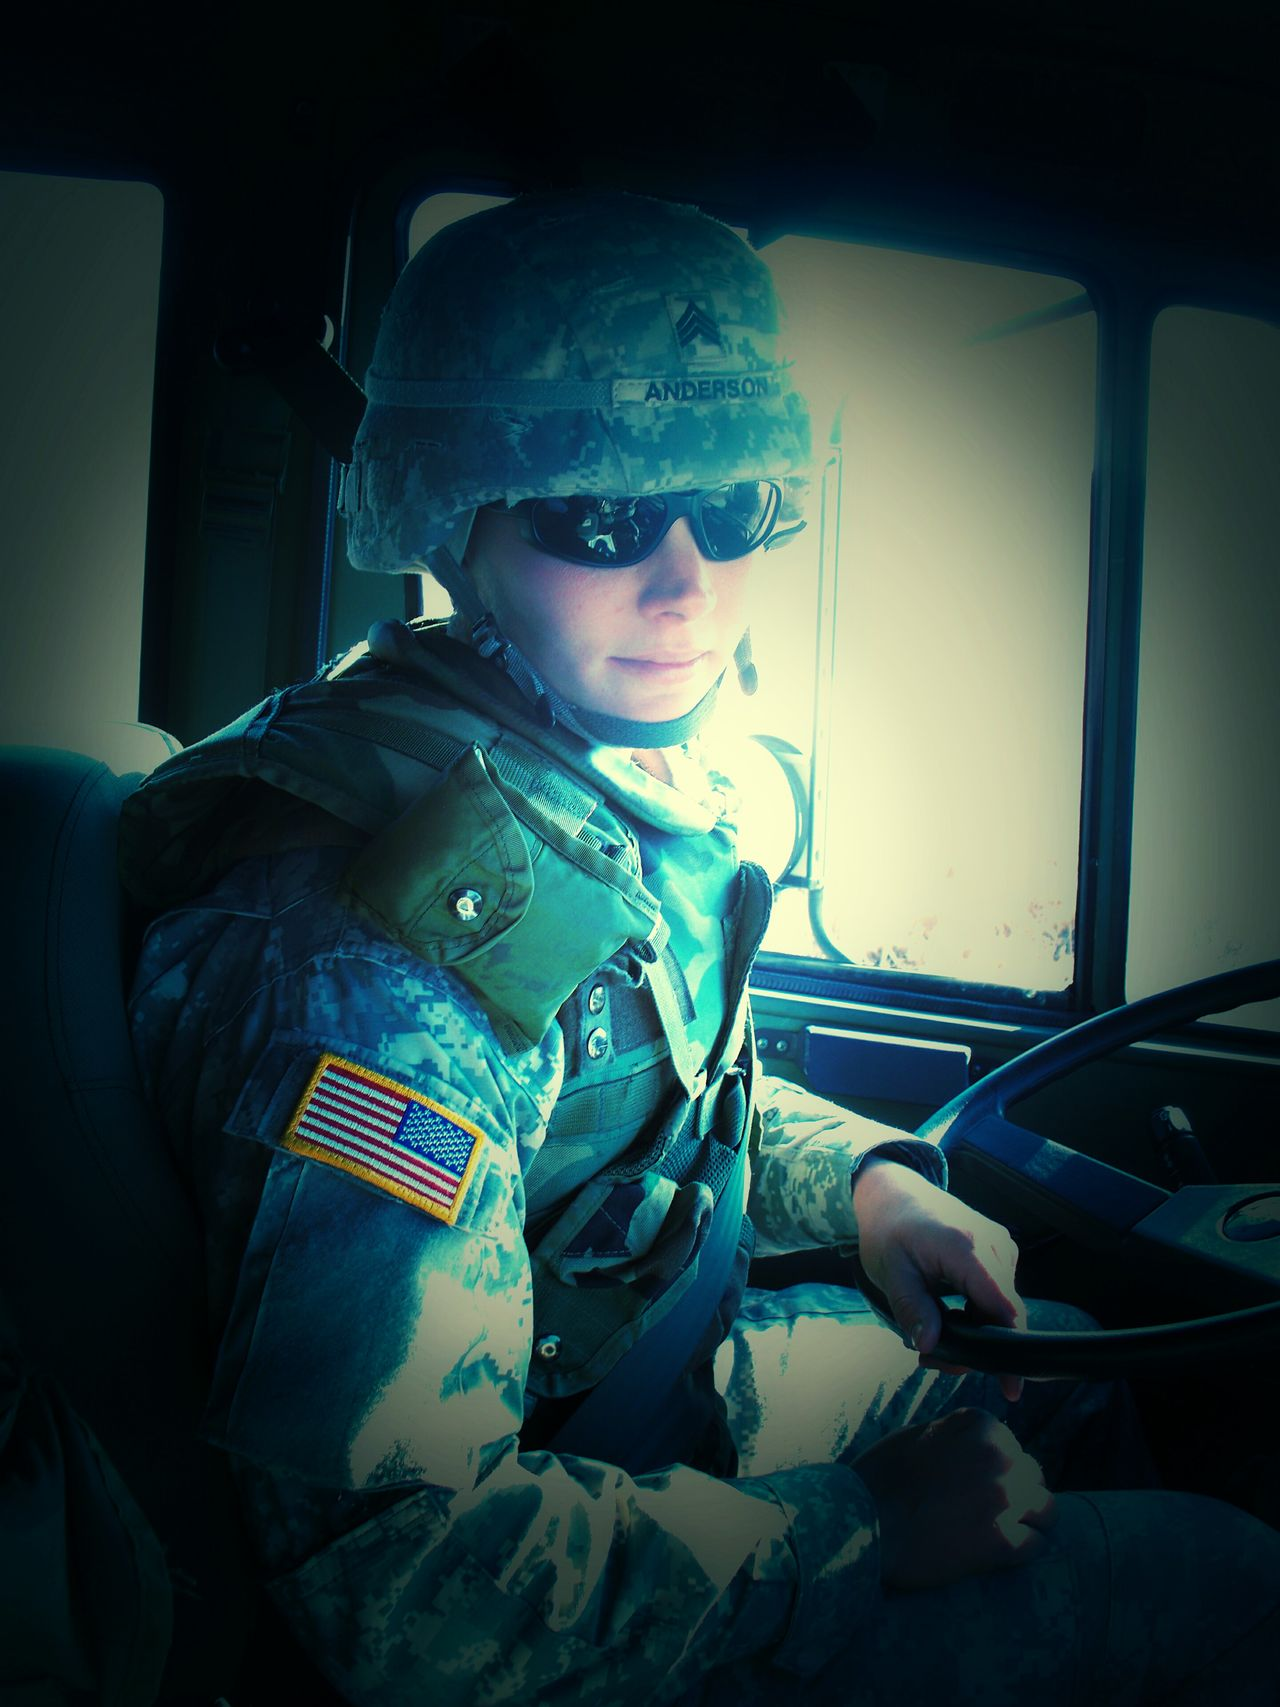 Army Strong Drive Transportation In Uniform Glamourous No Ac Soldier Living Army Life Army Strong Girl Soldier Warrior Girl Açu Cab Of A Truck Sexyselfie On A Mission Army Adventure Girl Portrait Tactical Military Vehicles Vehicle Driving Training Field